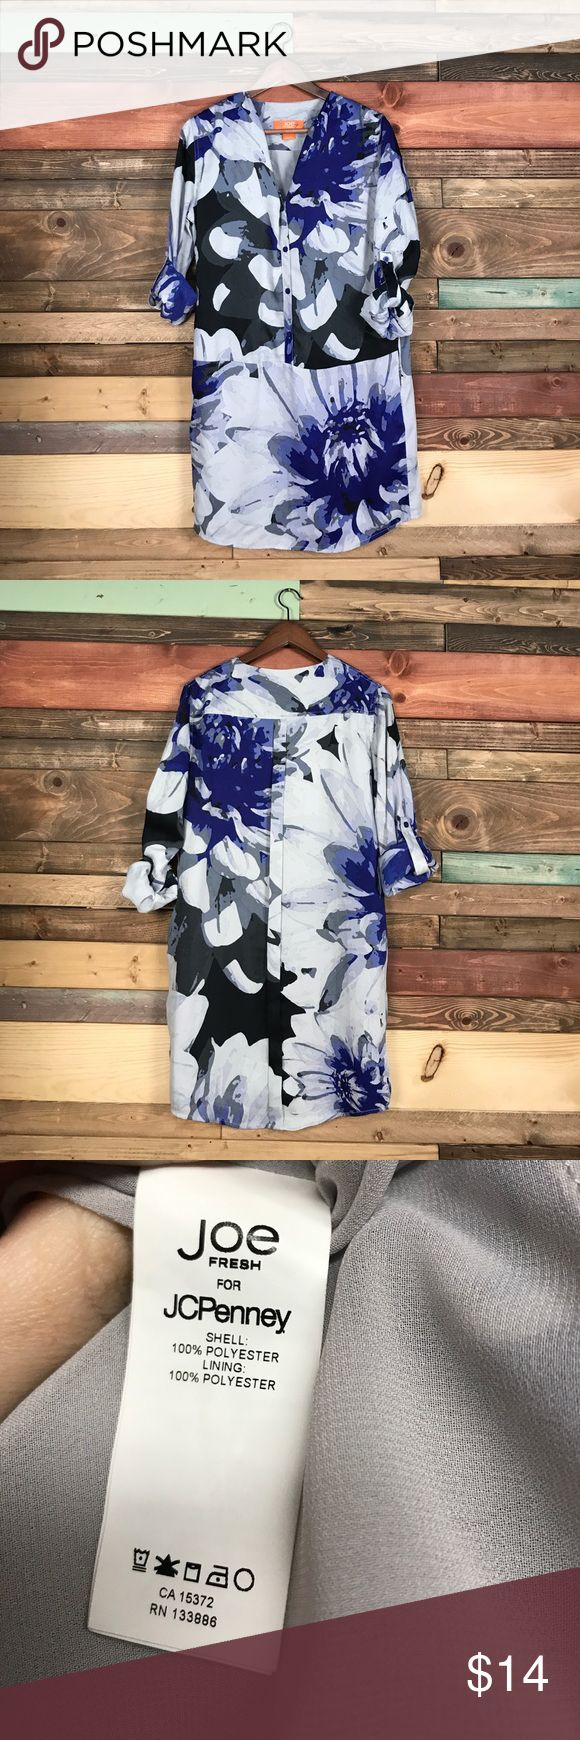 "Joe Fresh Grey Blue Floral Roll Tab Shirt Dress XS Joe Fresh Grey Blue Floral Roll Tab Shirt Dress XS // Bust: 19"" // Waist: 18"" laying flat // Length: 35"" // Bundle your likes and make an offer for best deals @woodsnap! Joe Fresh Dresses"